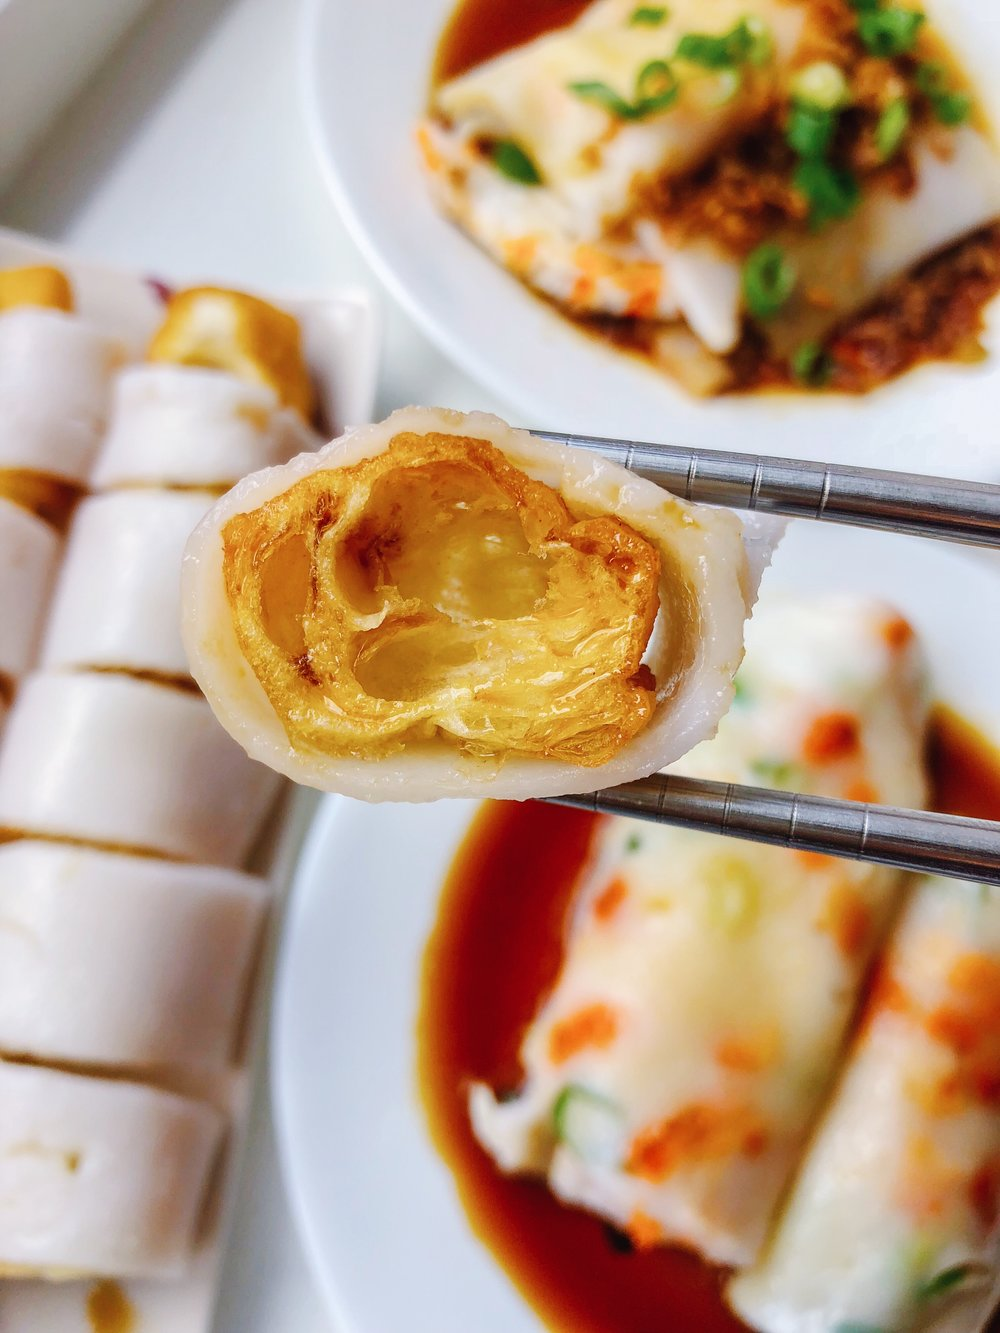 I personally think Zha Leung is one of the most delicious ways to eat Cheung Fun!